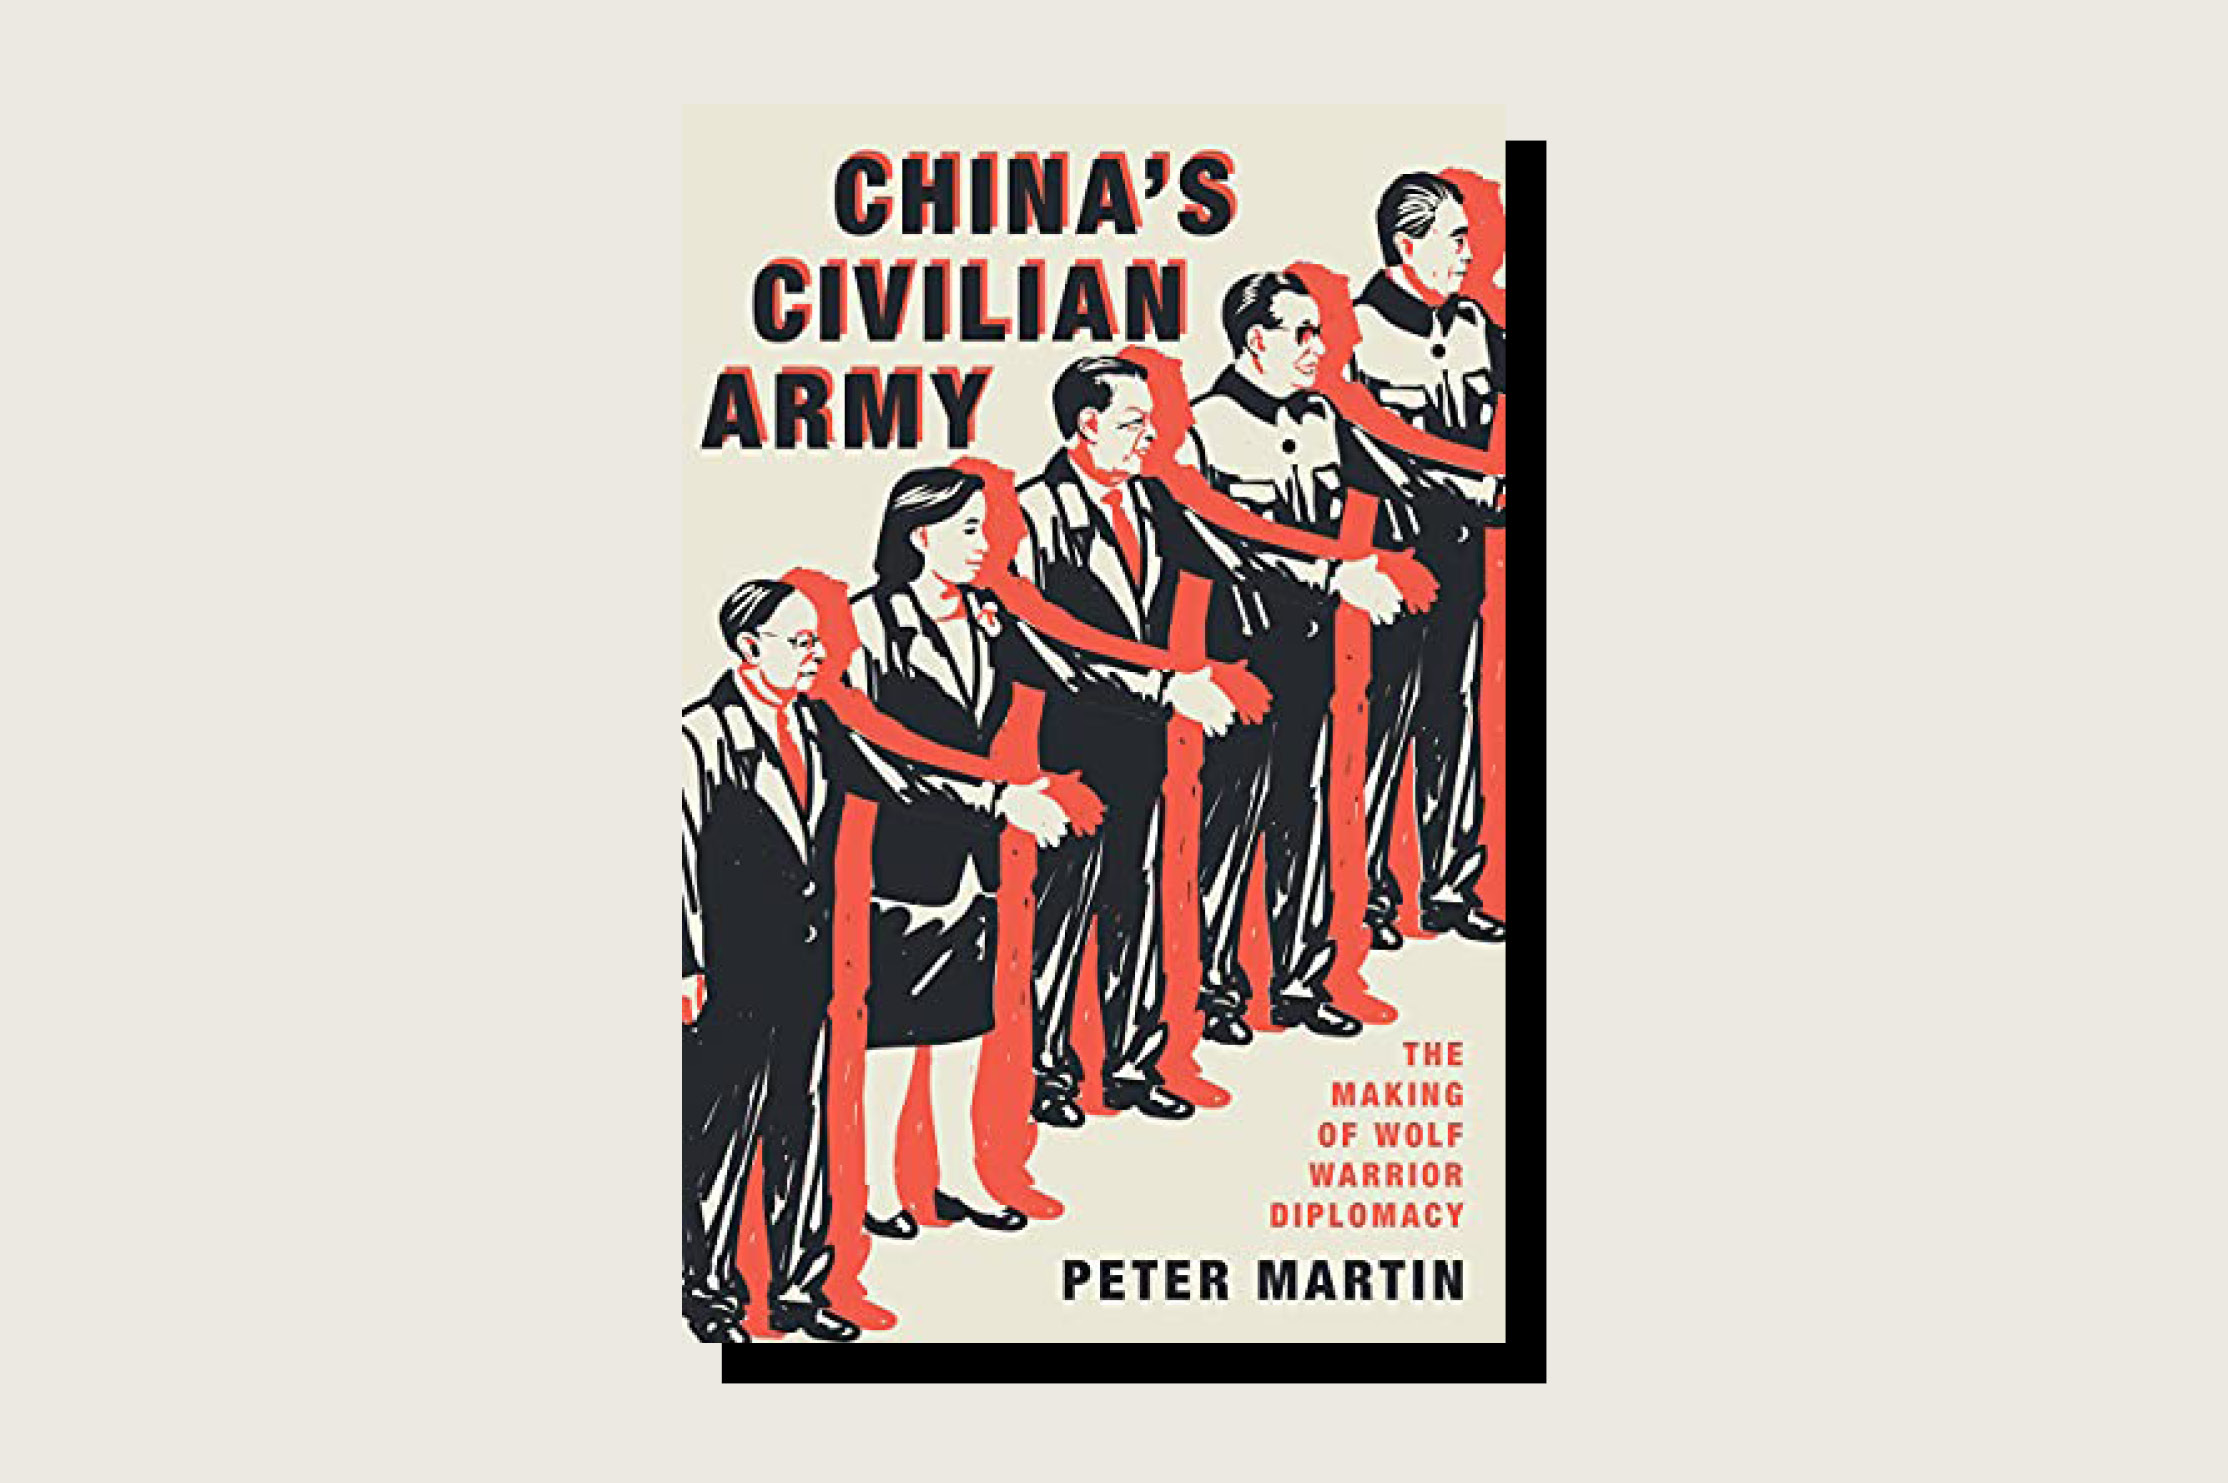 This article is adapted from China's Civilian Army: The Making of Wolf Warrior Diplomacy by Peter Martin (Oxford University Press, 320 pp., .95, June 2021).